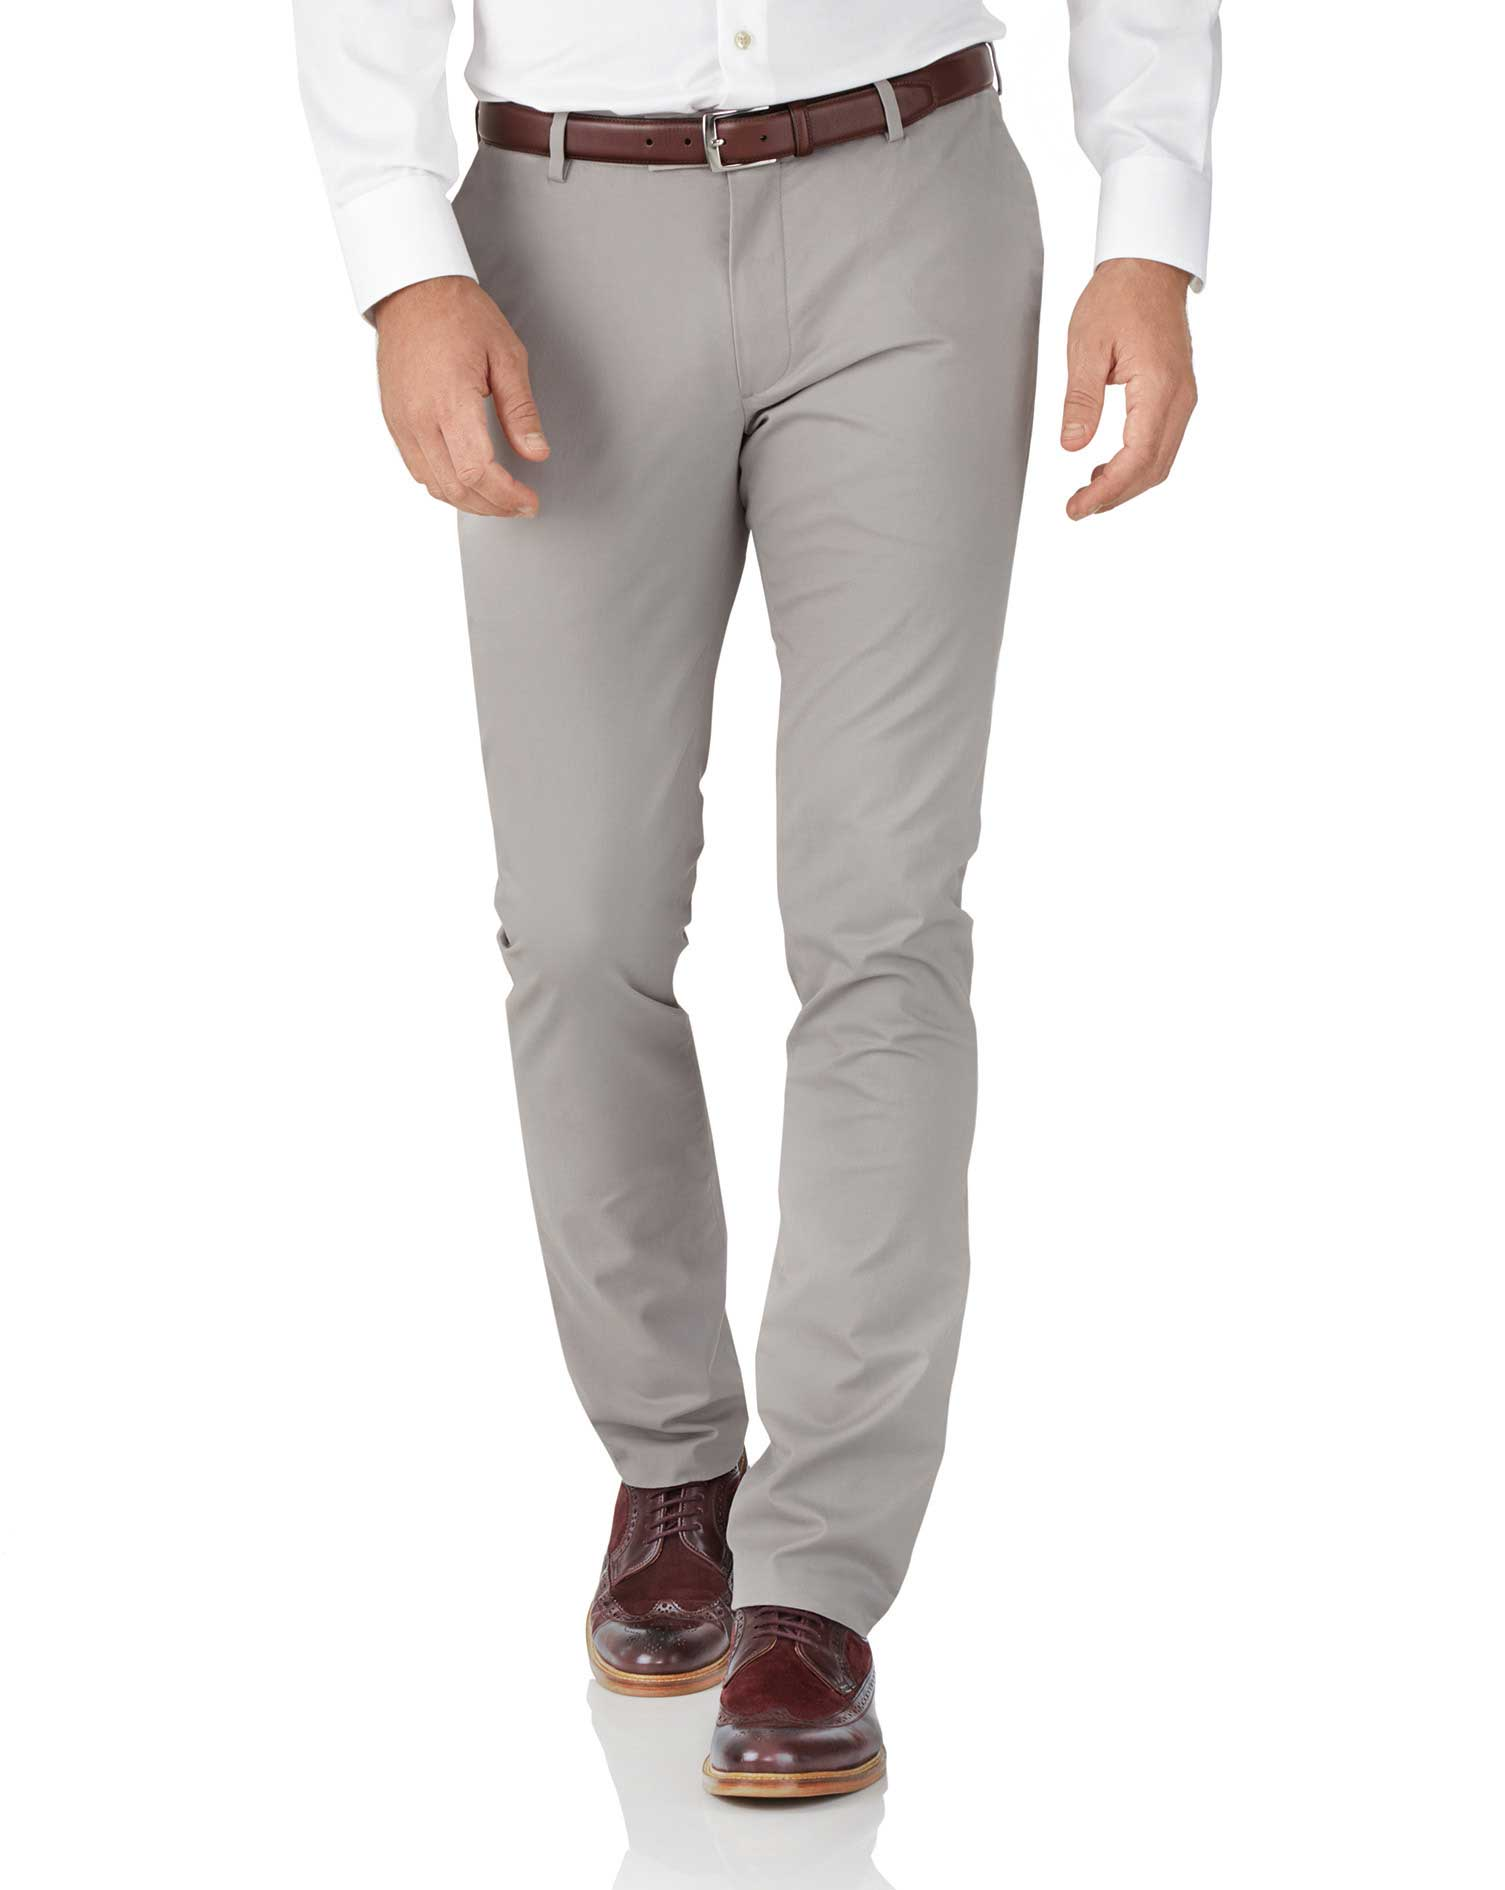 Grey Extra Slim Fit Stretch Cotton Chino Trousers Size W32 L32 by Charles Tyrwhitt